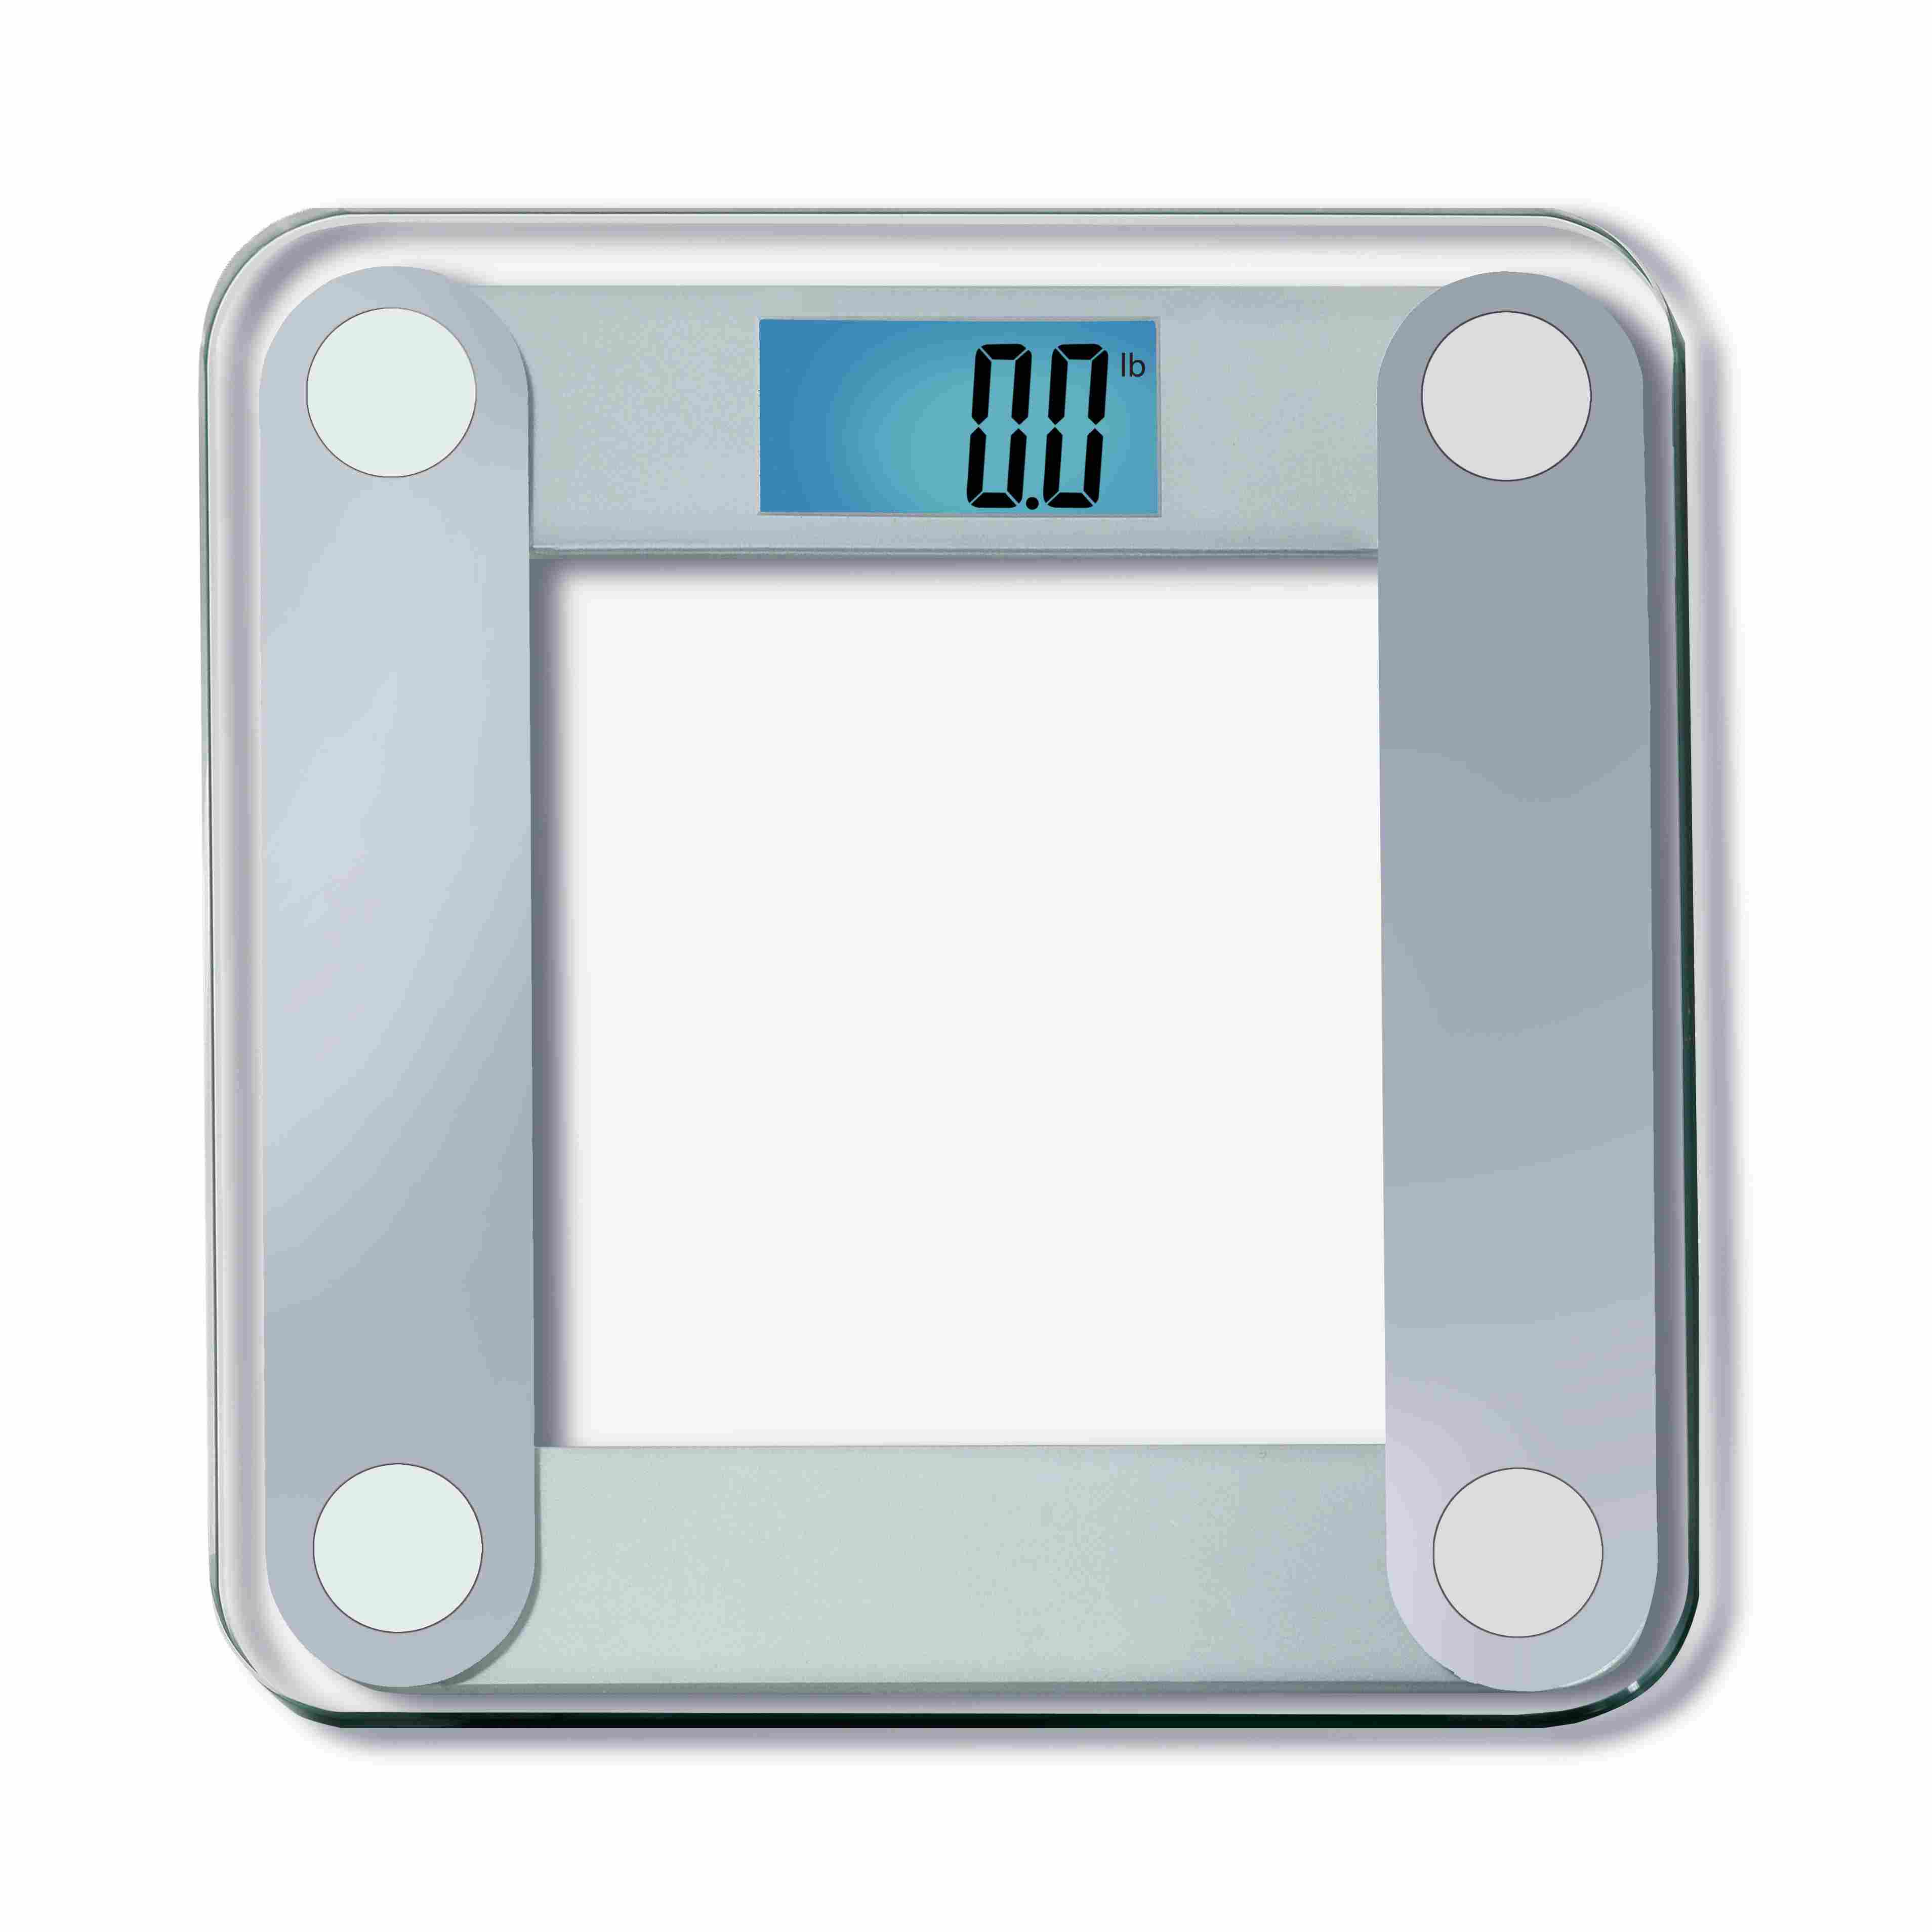 eatsmart precision digital bathroom scale manual